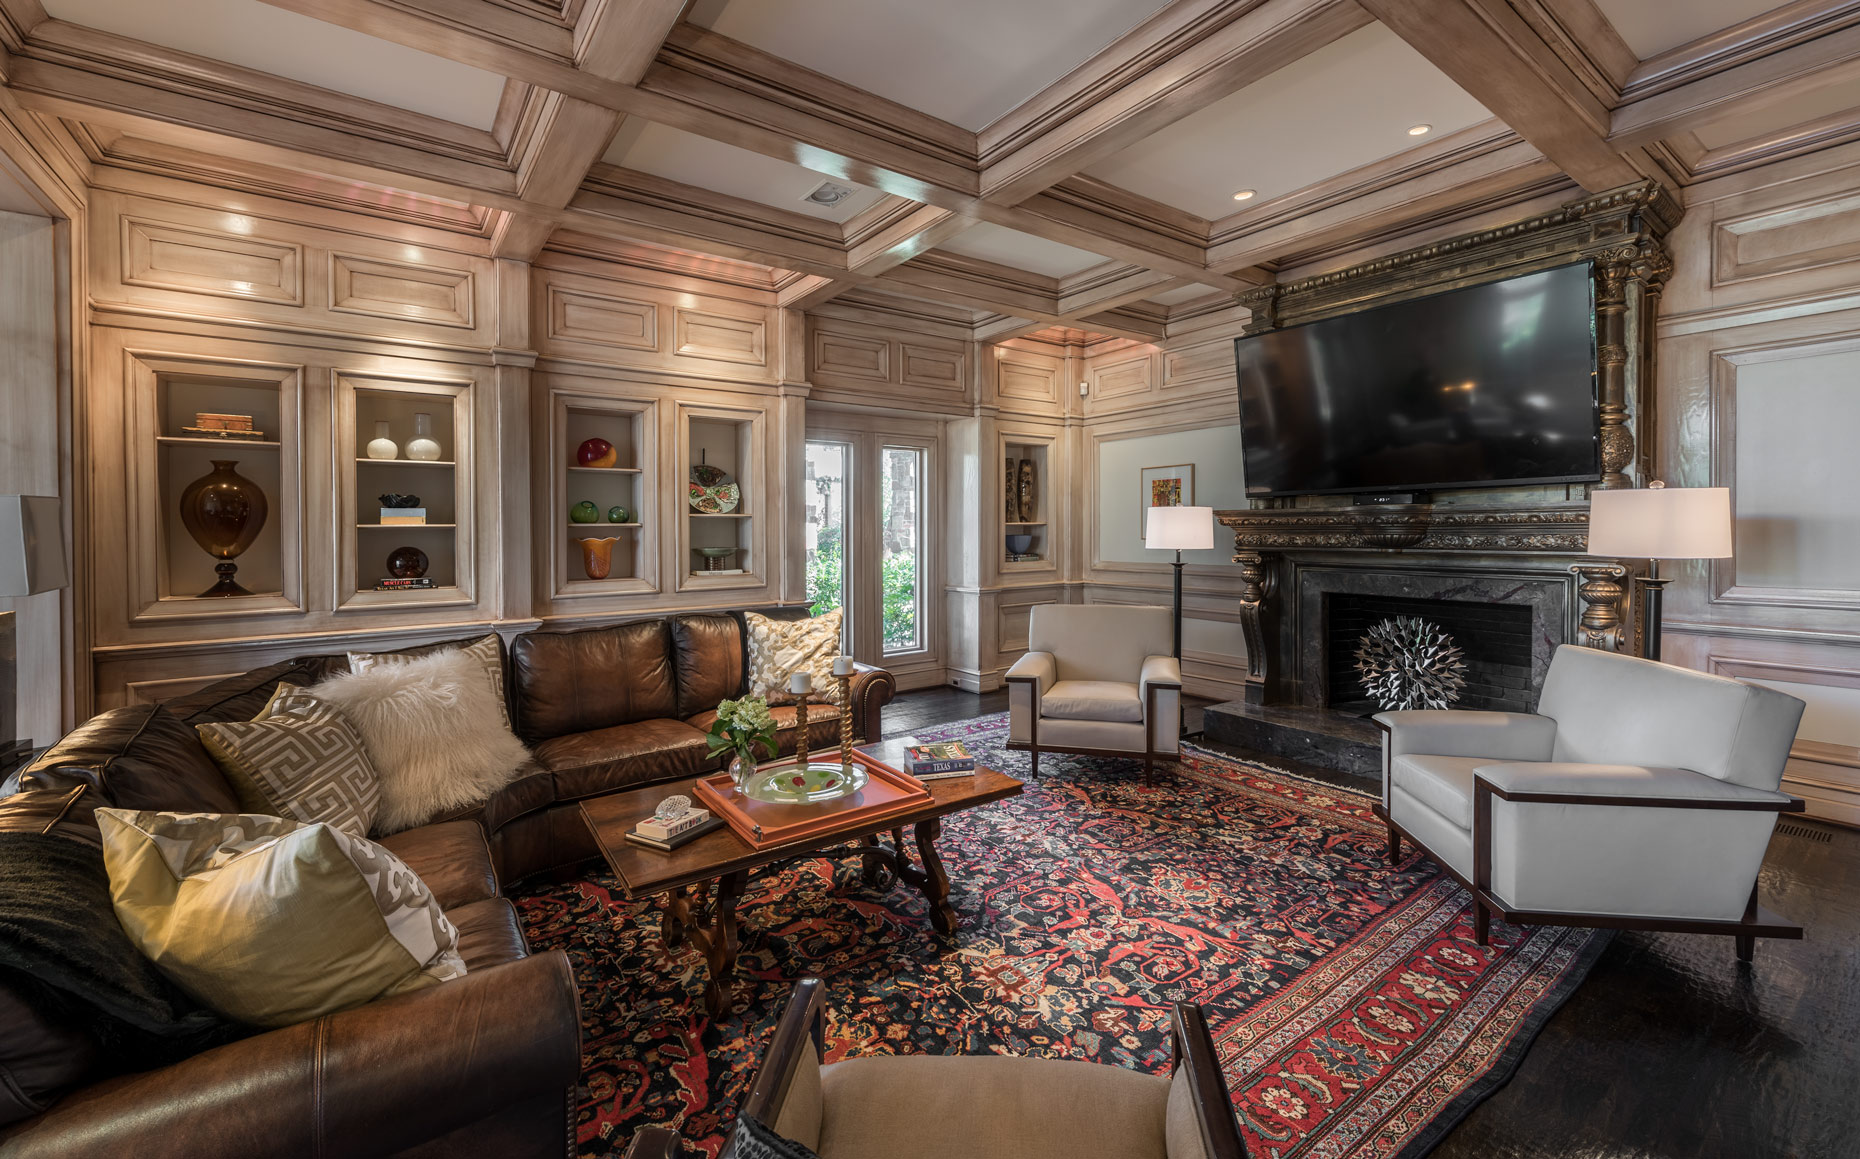 Interiors by Dallas architectural photographer Kevin Brown